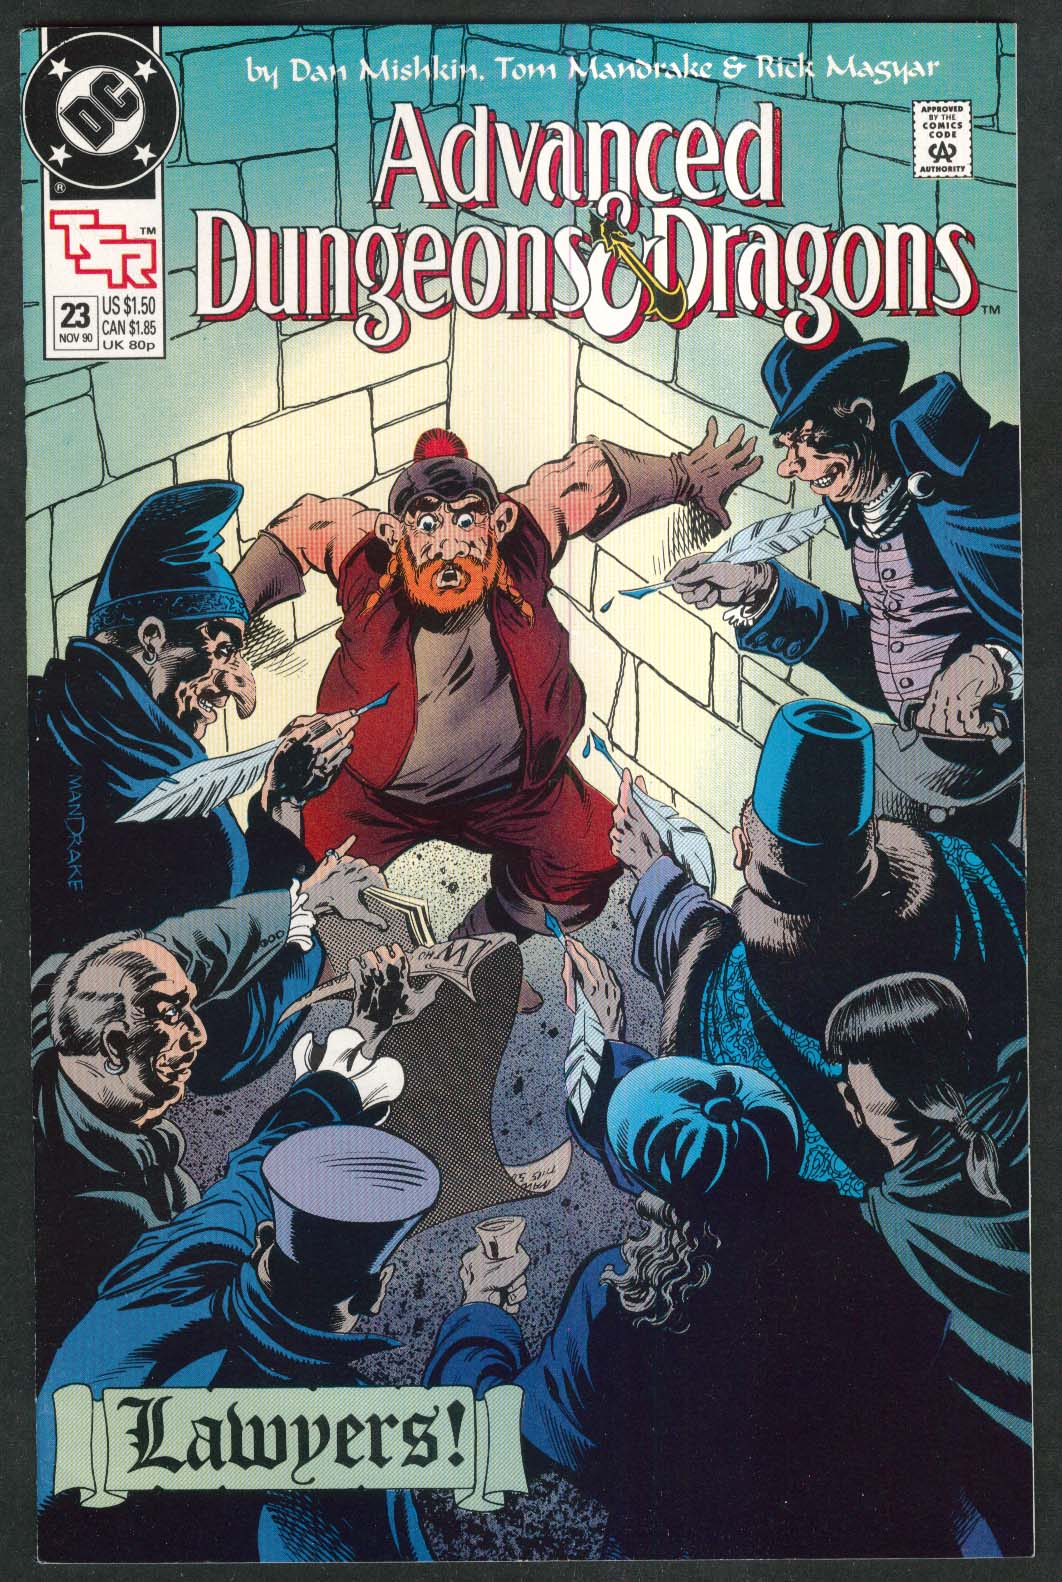 ADVANCED DUNGEONS & DRAGONS #23 DC TSR comic book 11 1990